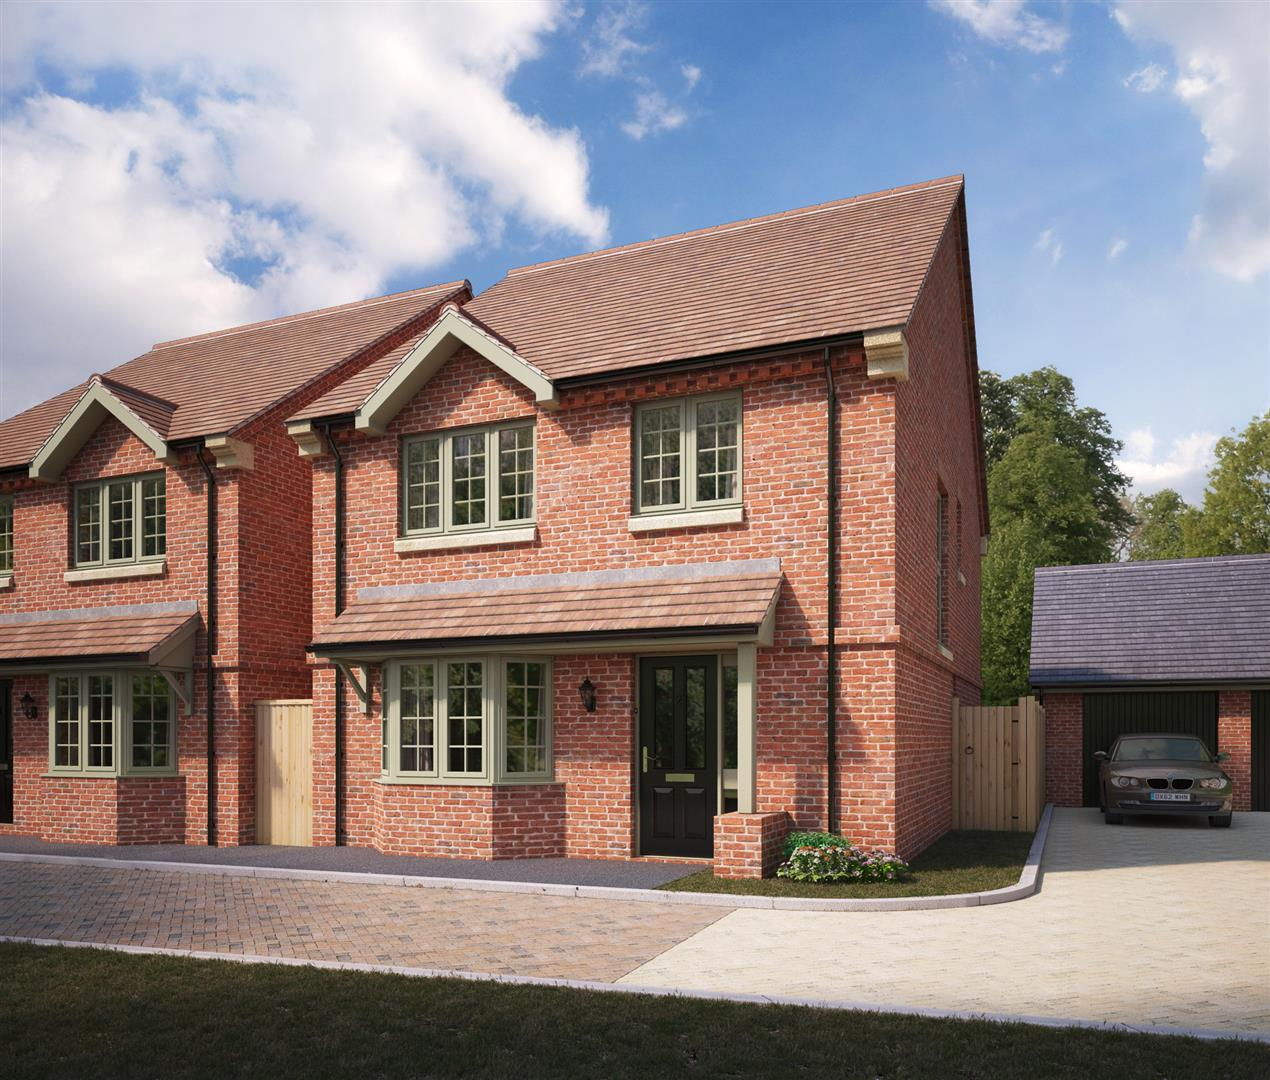 4 Bedrooms Detached House for sale in Sand Pit Road, Calne